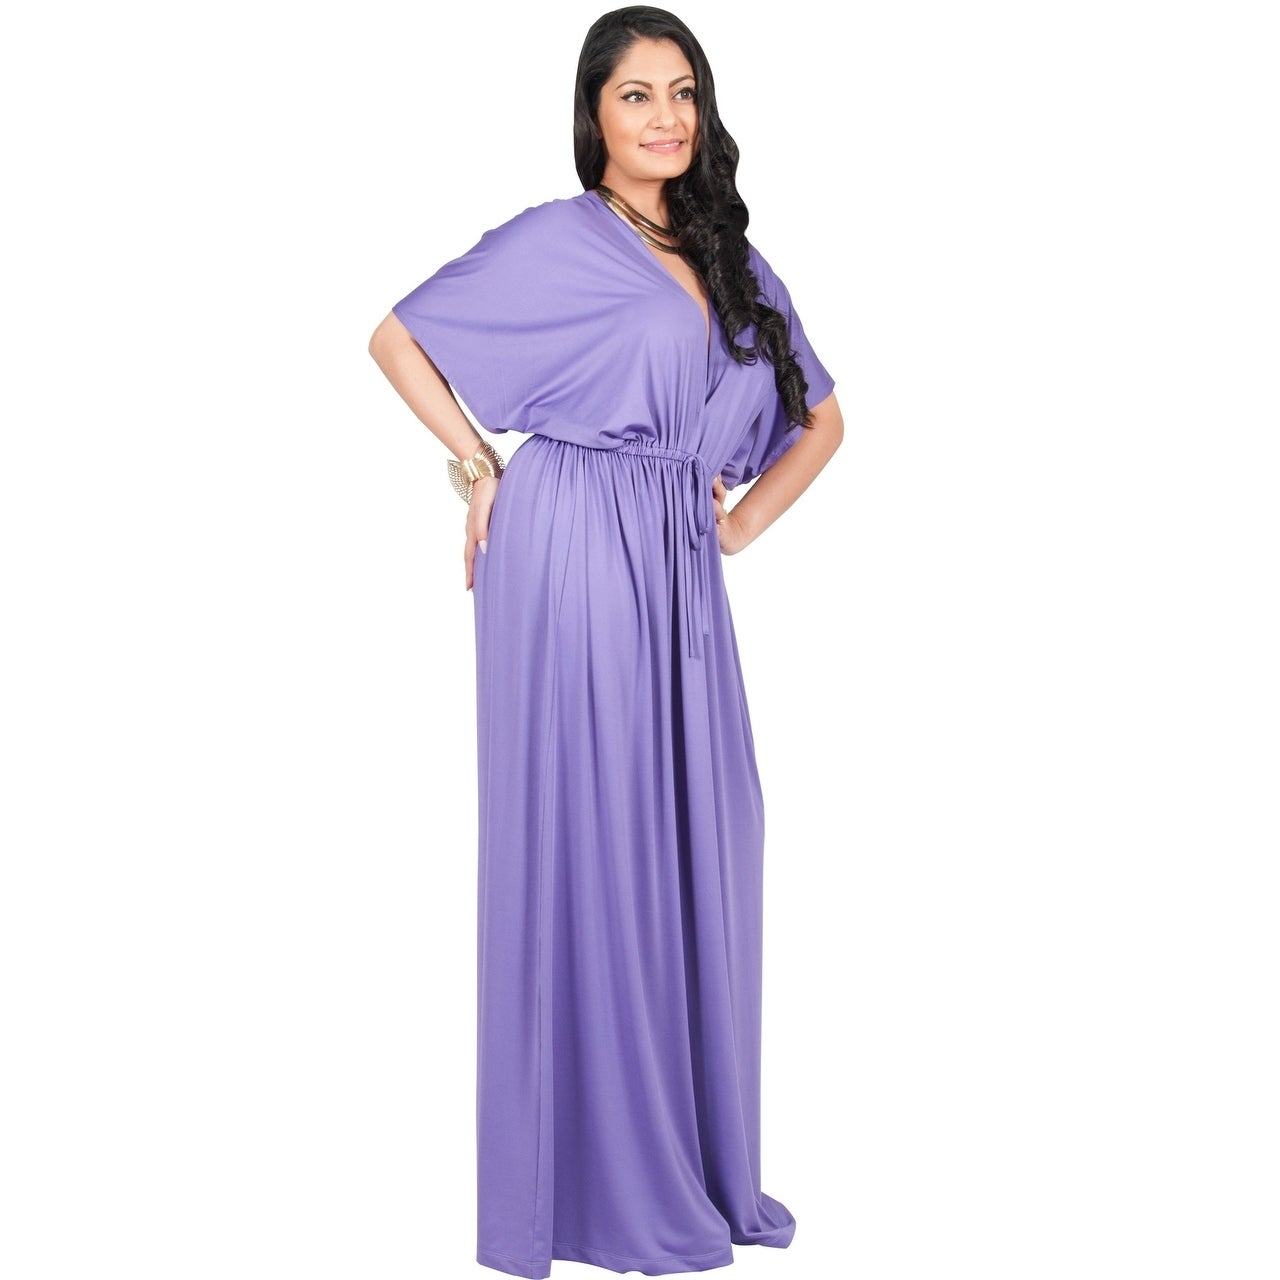 1901bb7ec4 Shop Adelyn   Vivian Women s Plus-size Long V-neck Short-sleeve Kimono-style  Maxi Dress Casual Gown - Free Shipping Today - Overstock - 12873011